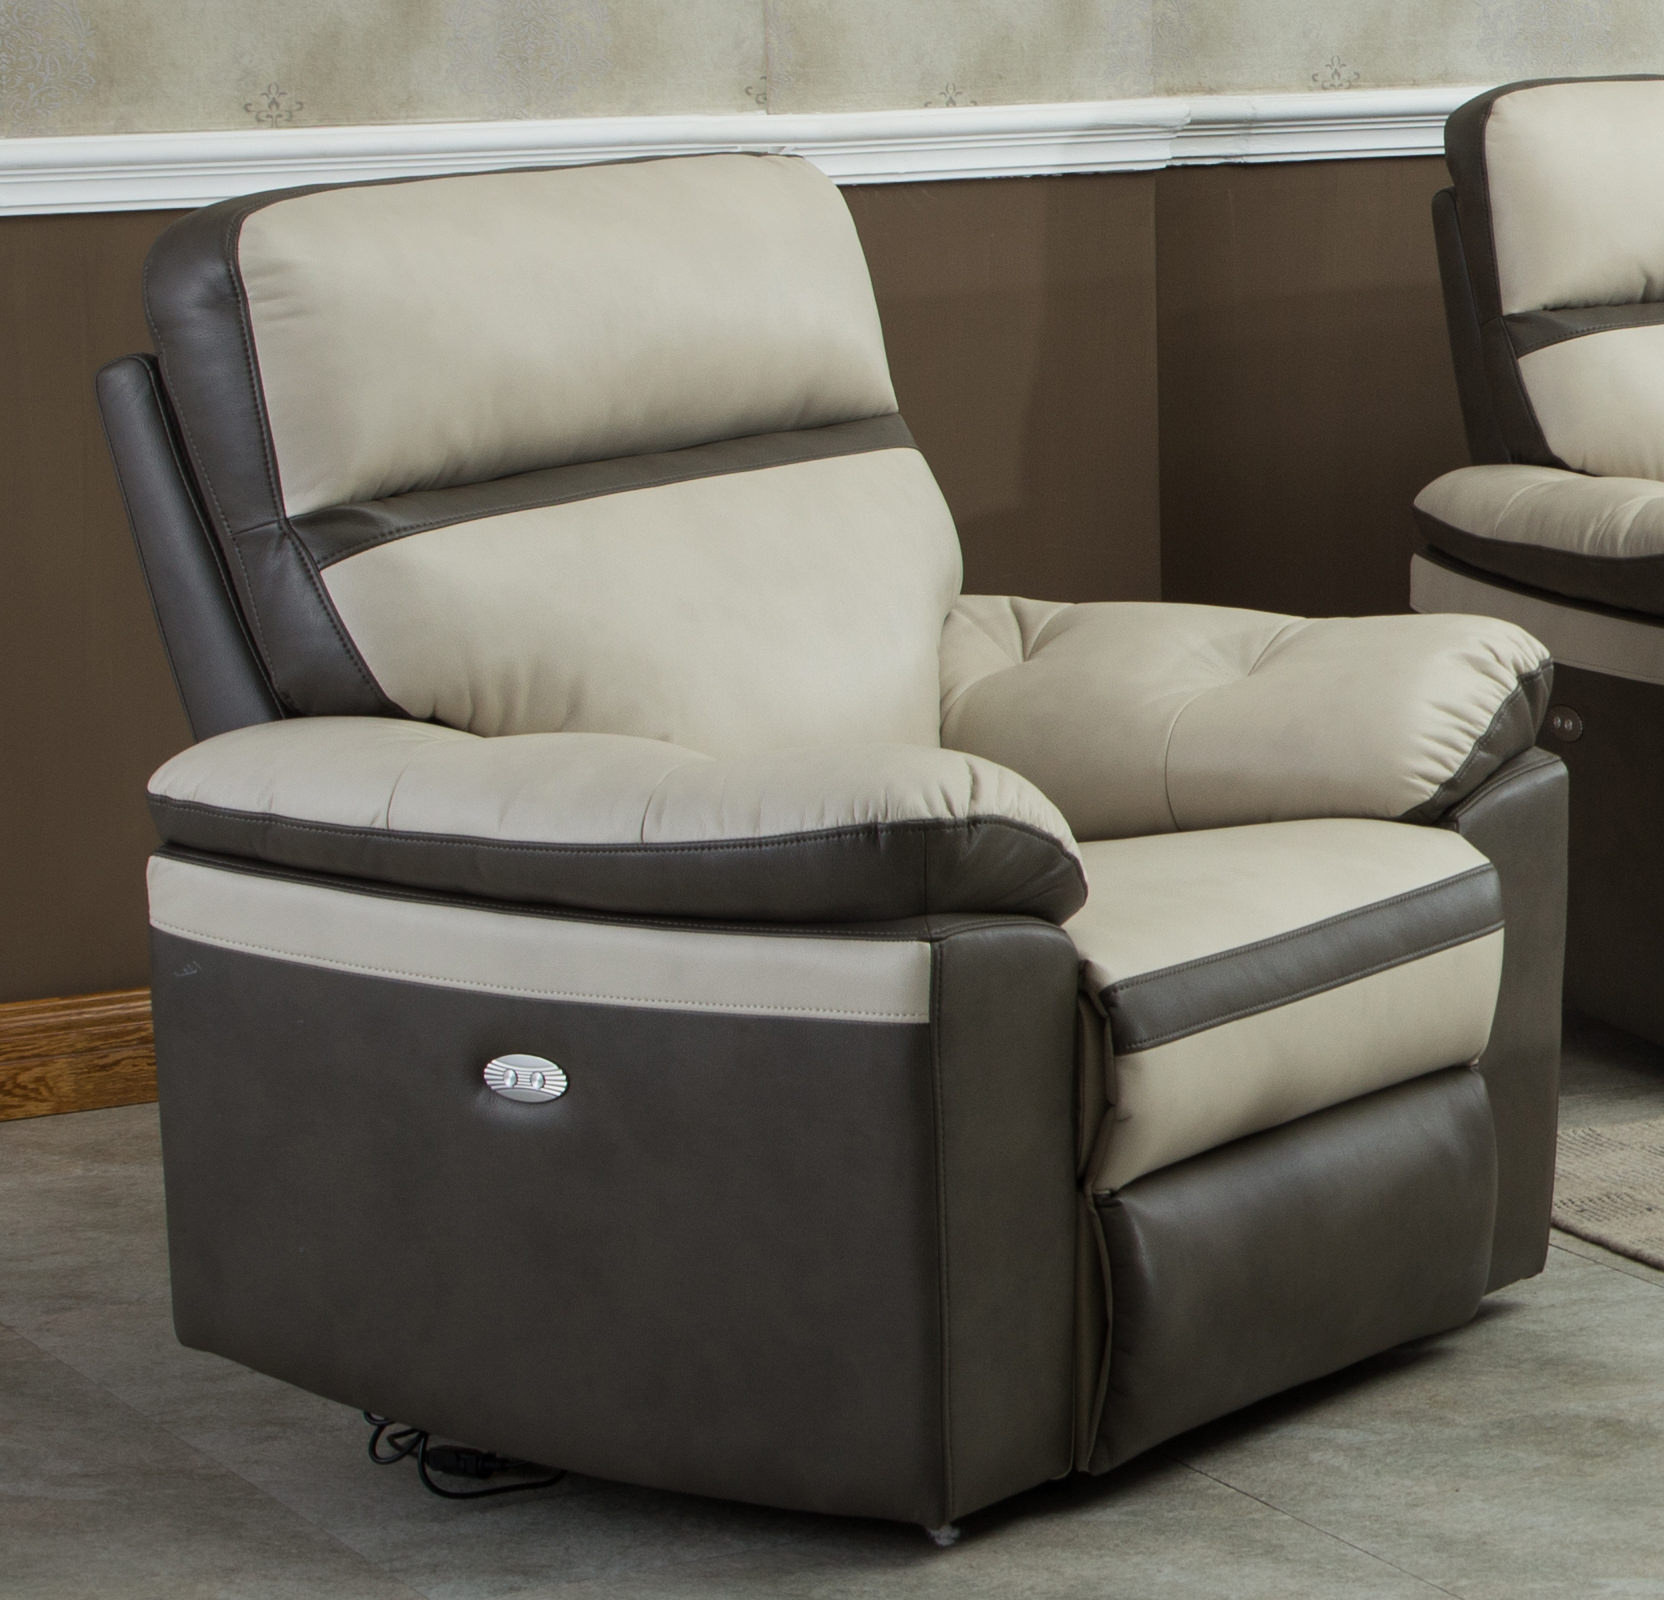 Charmant Gordon Motion Two Tone Leather Air Electric Power Recliner Chair